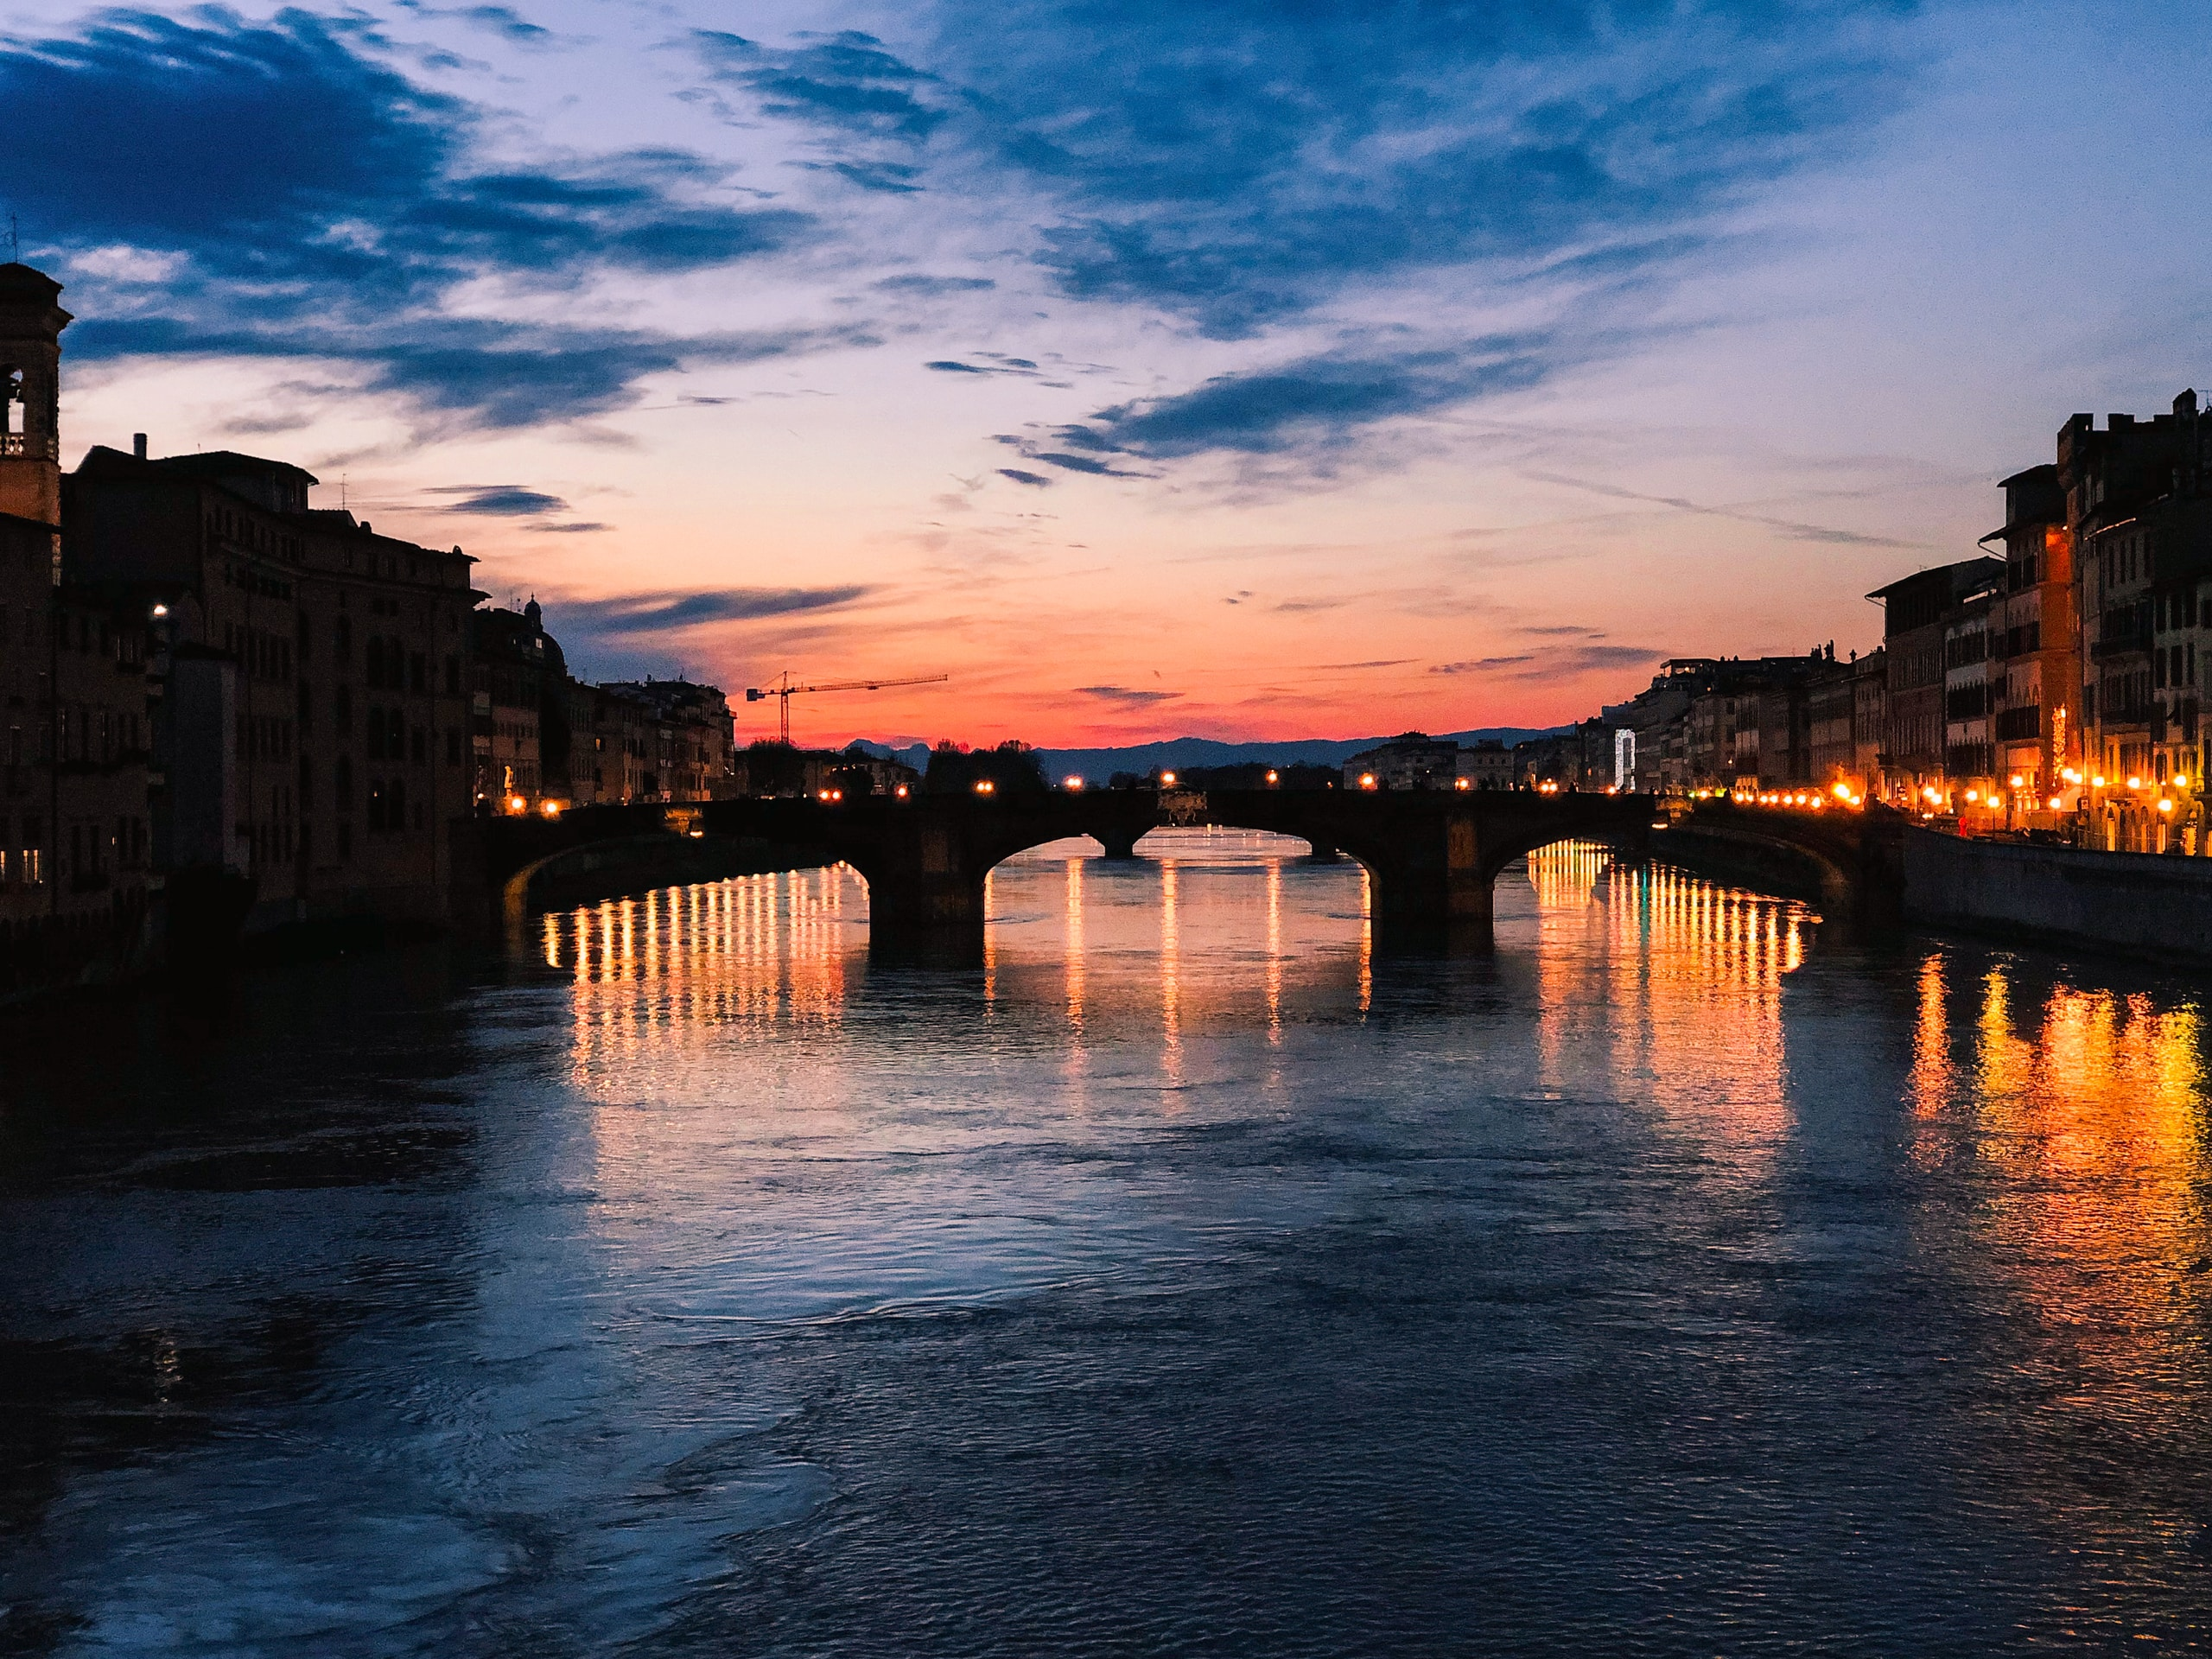 Florencia, body of water between buildings during sunset